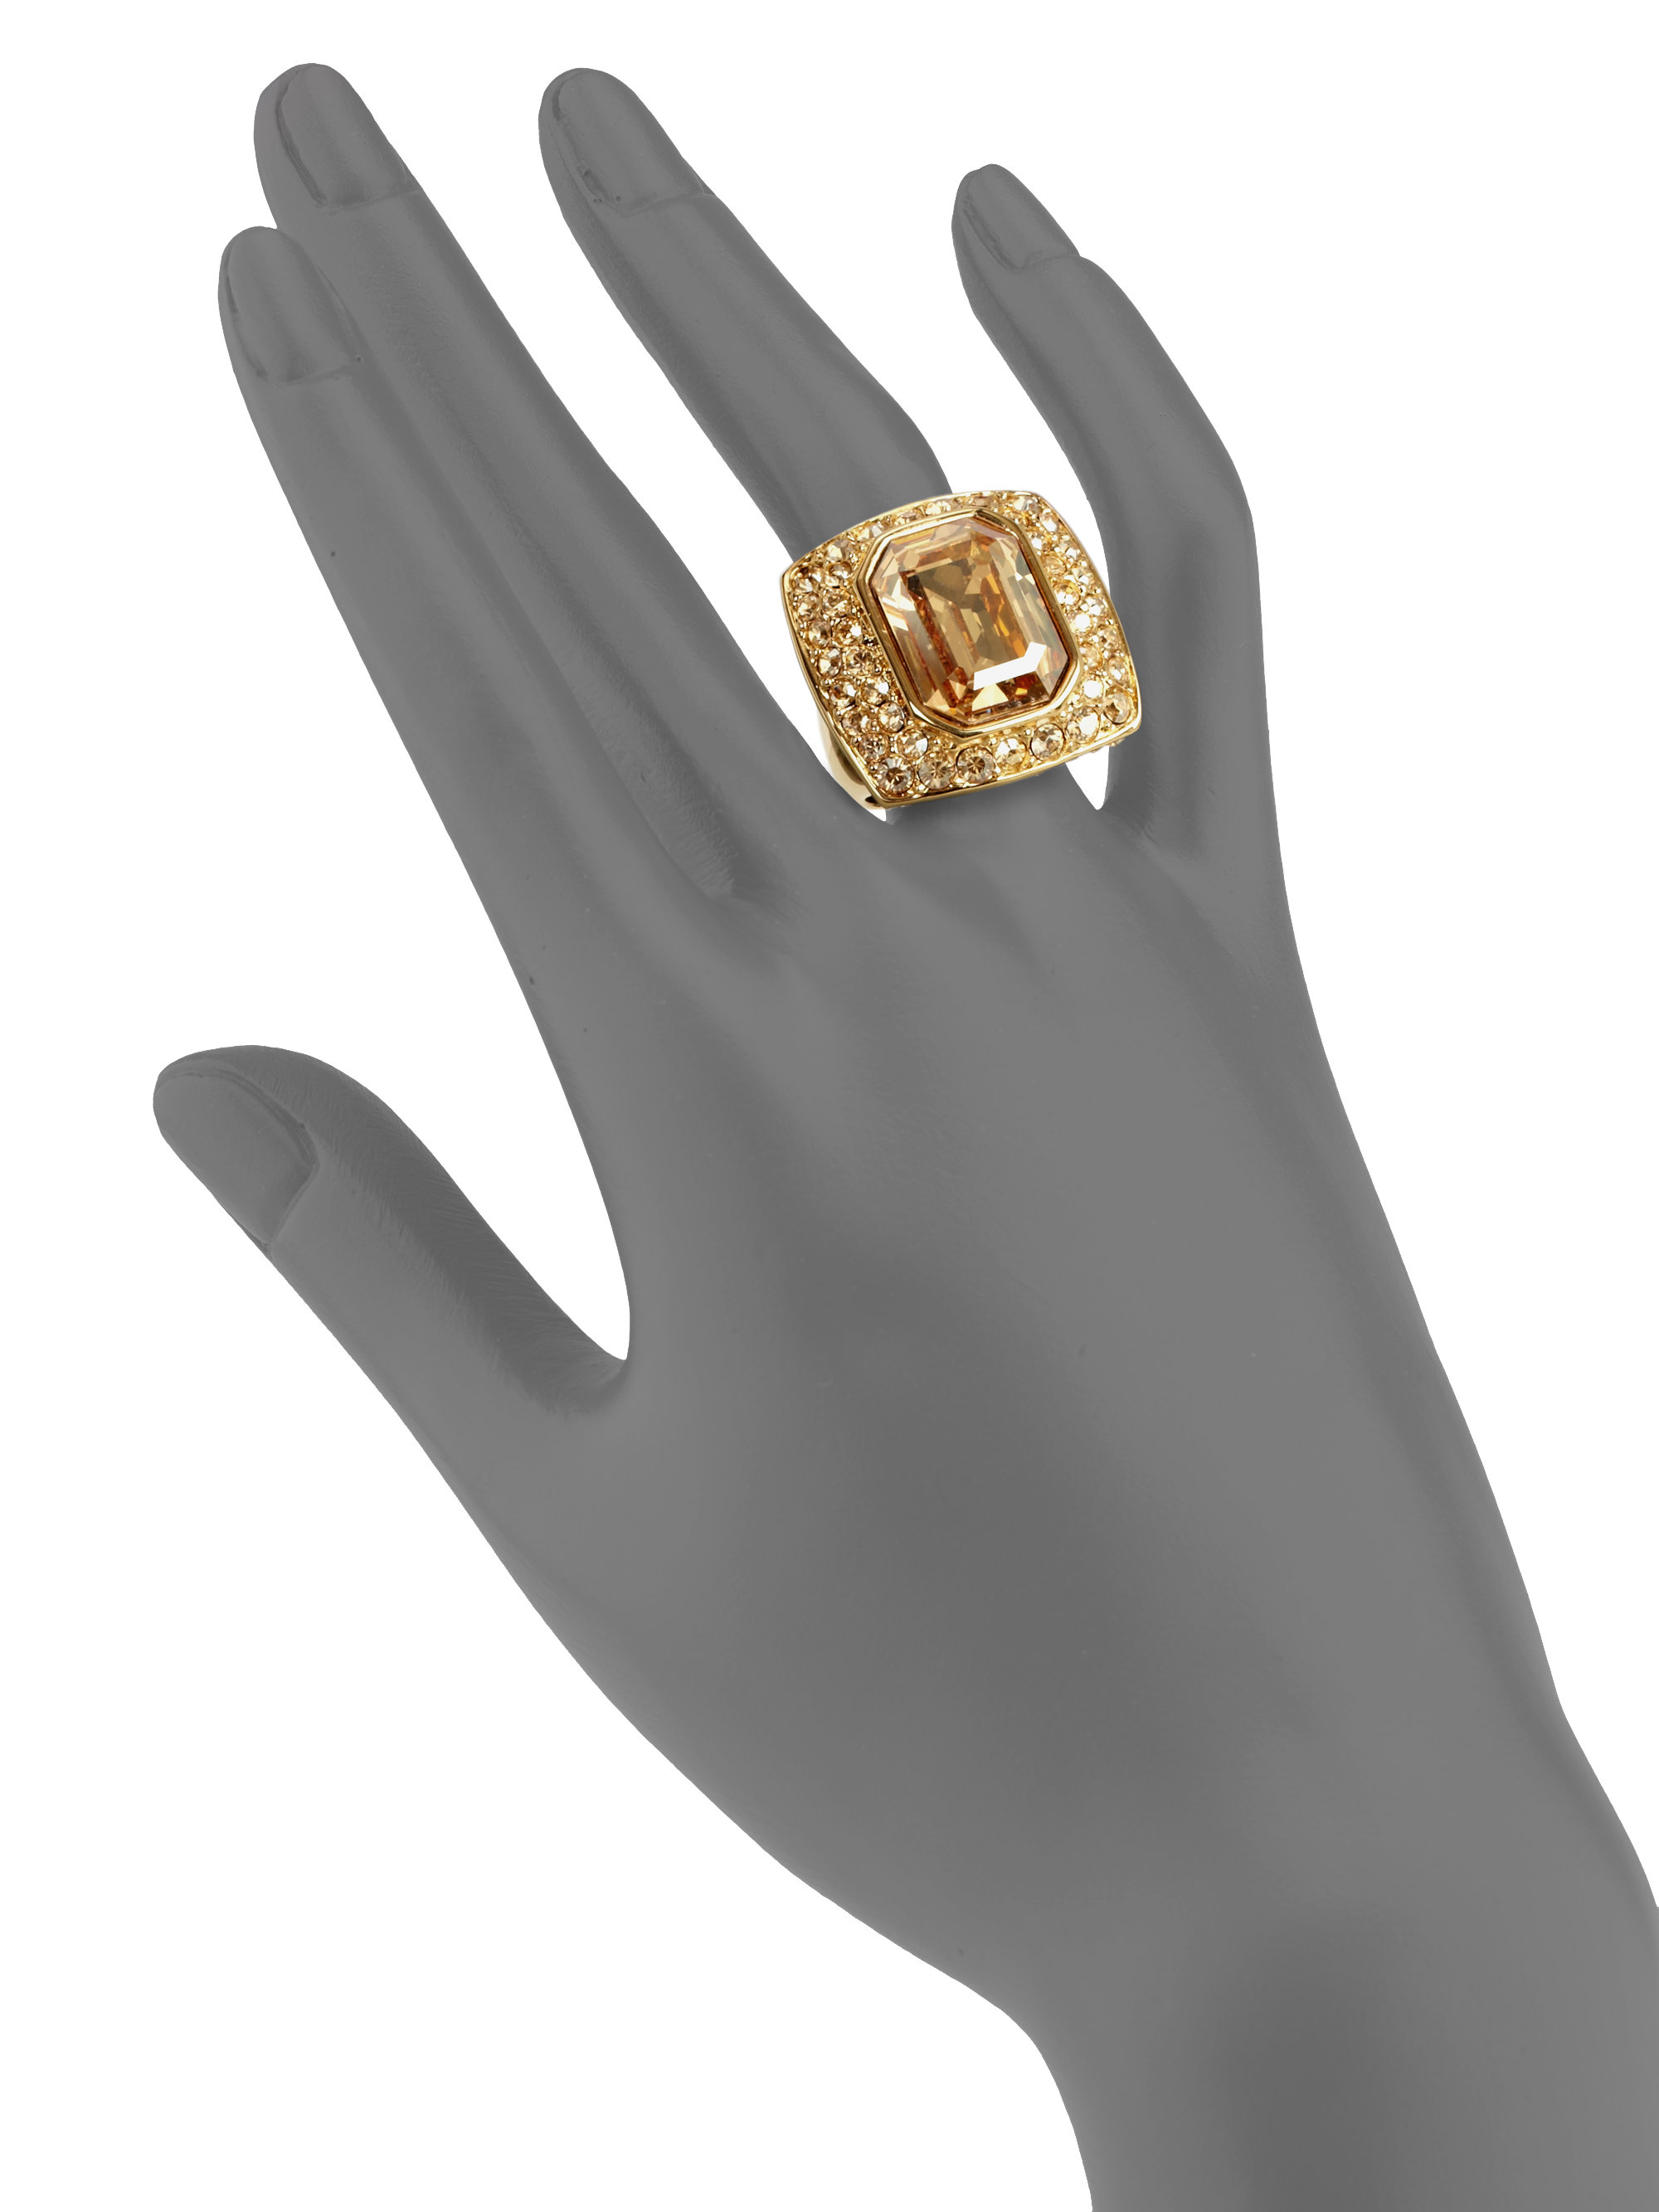 crystal enlarged leiber the rings products cocktail ring judith jewelry diamond markie